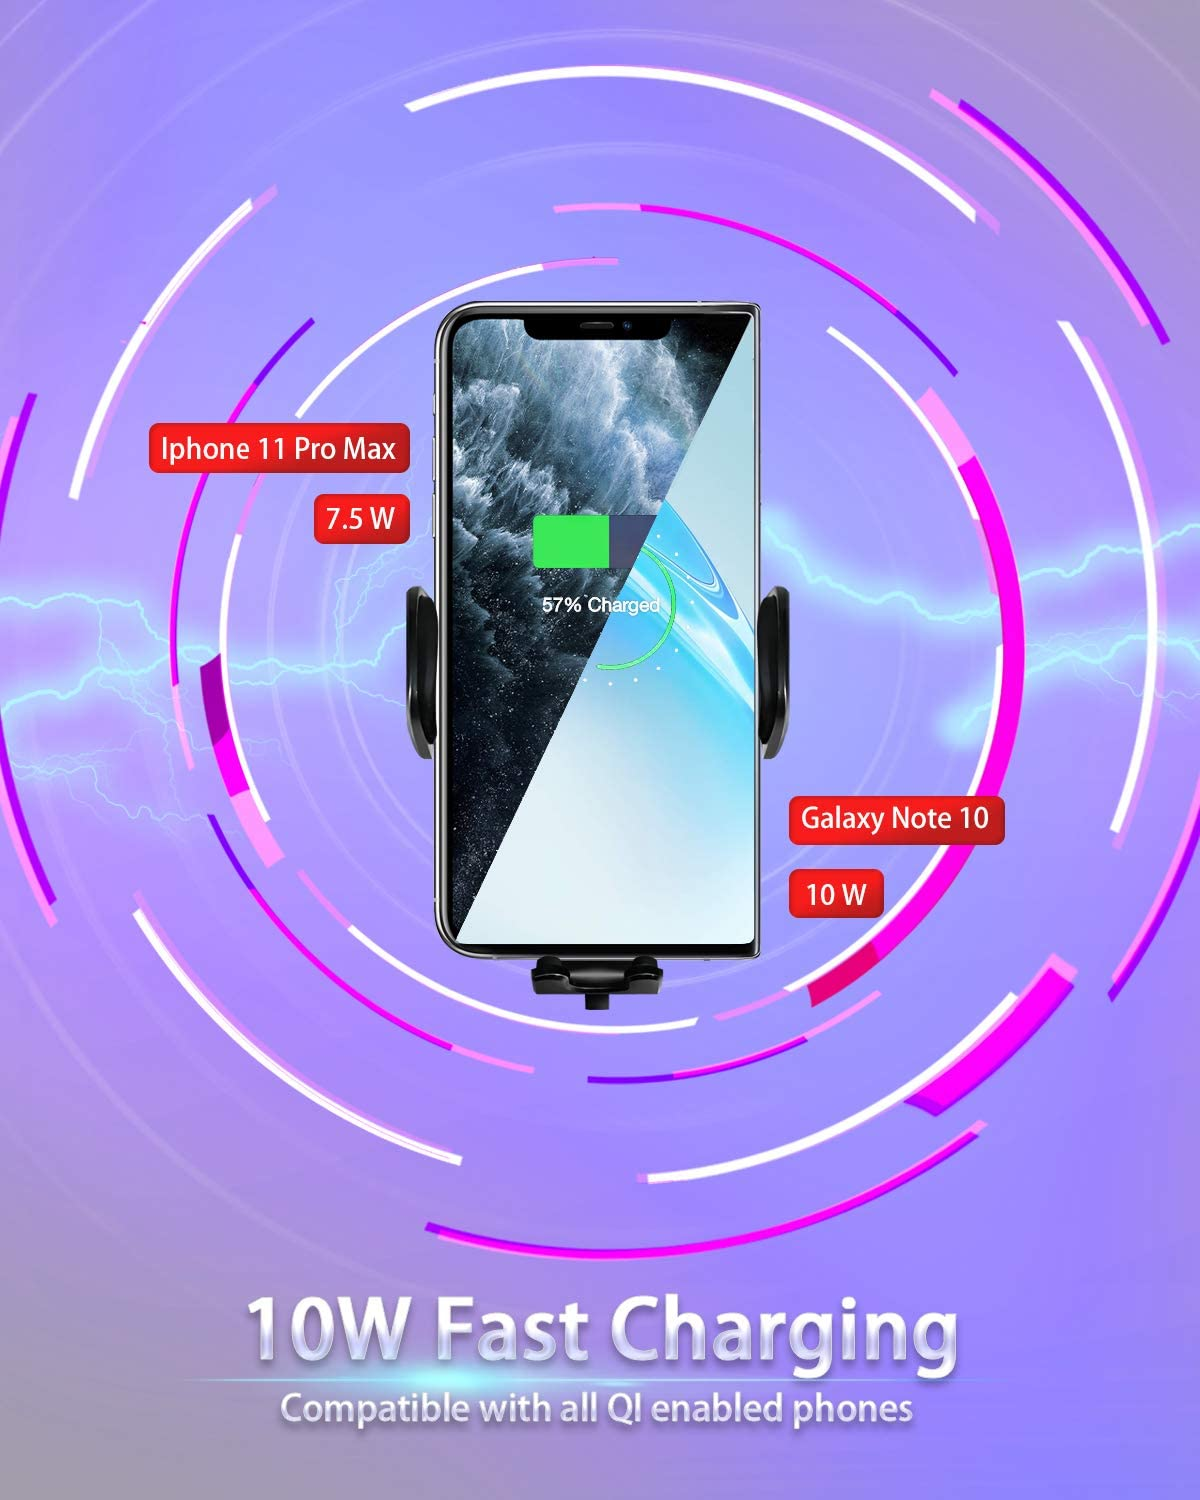 11 Pro//Pro MAX Xs Max,XR,XS,X Galaxy S10,S9,S8 Note 10,9,8 w//Power Adapter YoSpot Smart Wireless Charger Auto-Clamp Mount w//USB-C AC Vent /& Windshield Phone Holder Compatible with iPhone 11